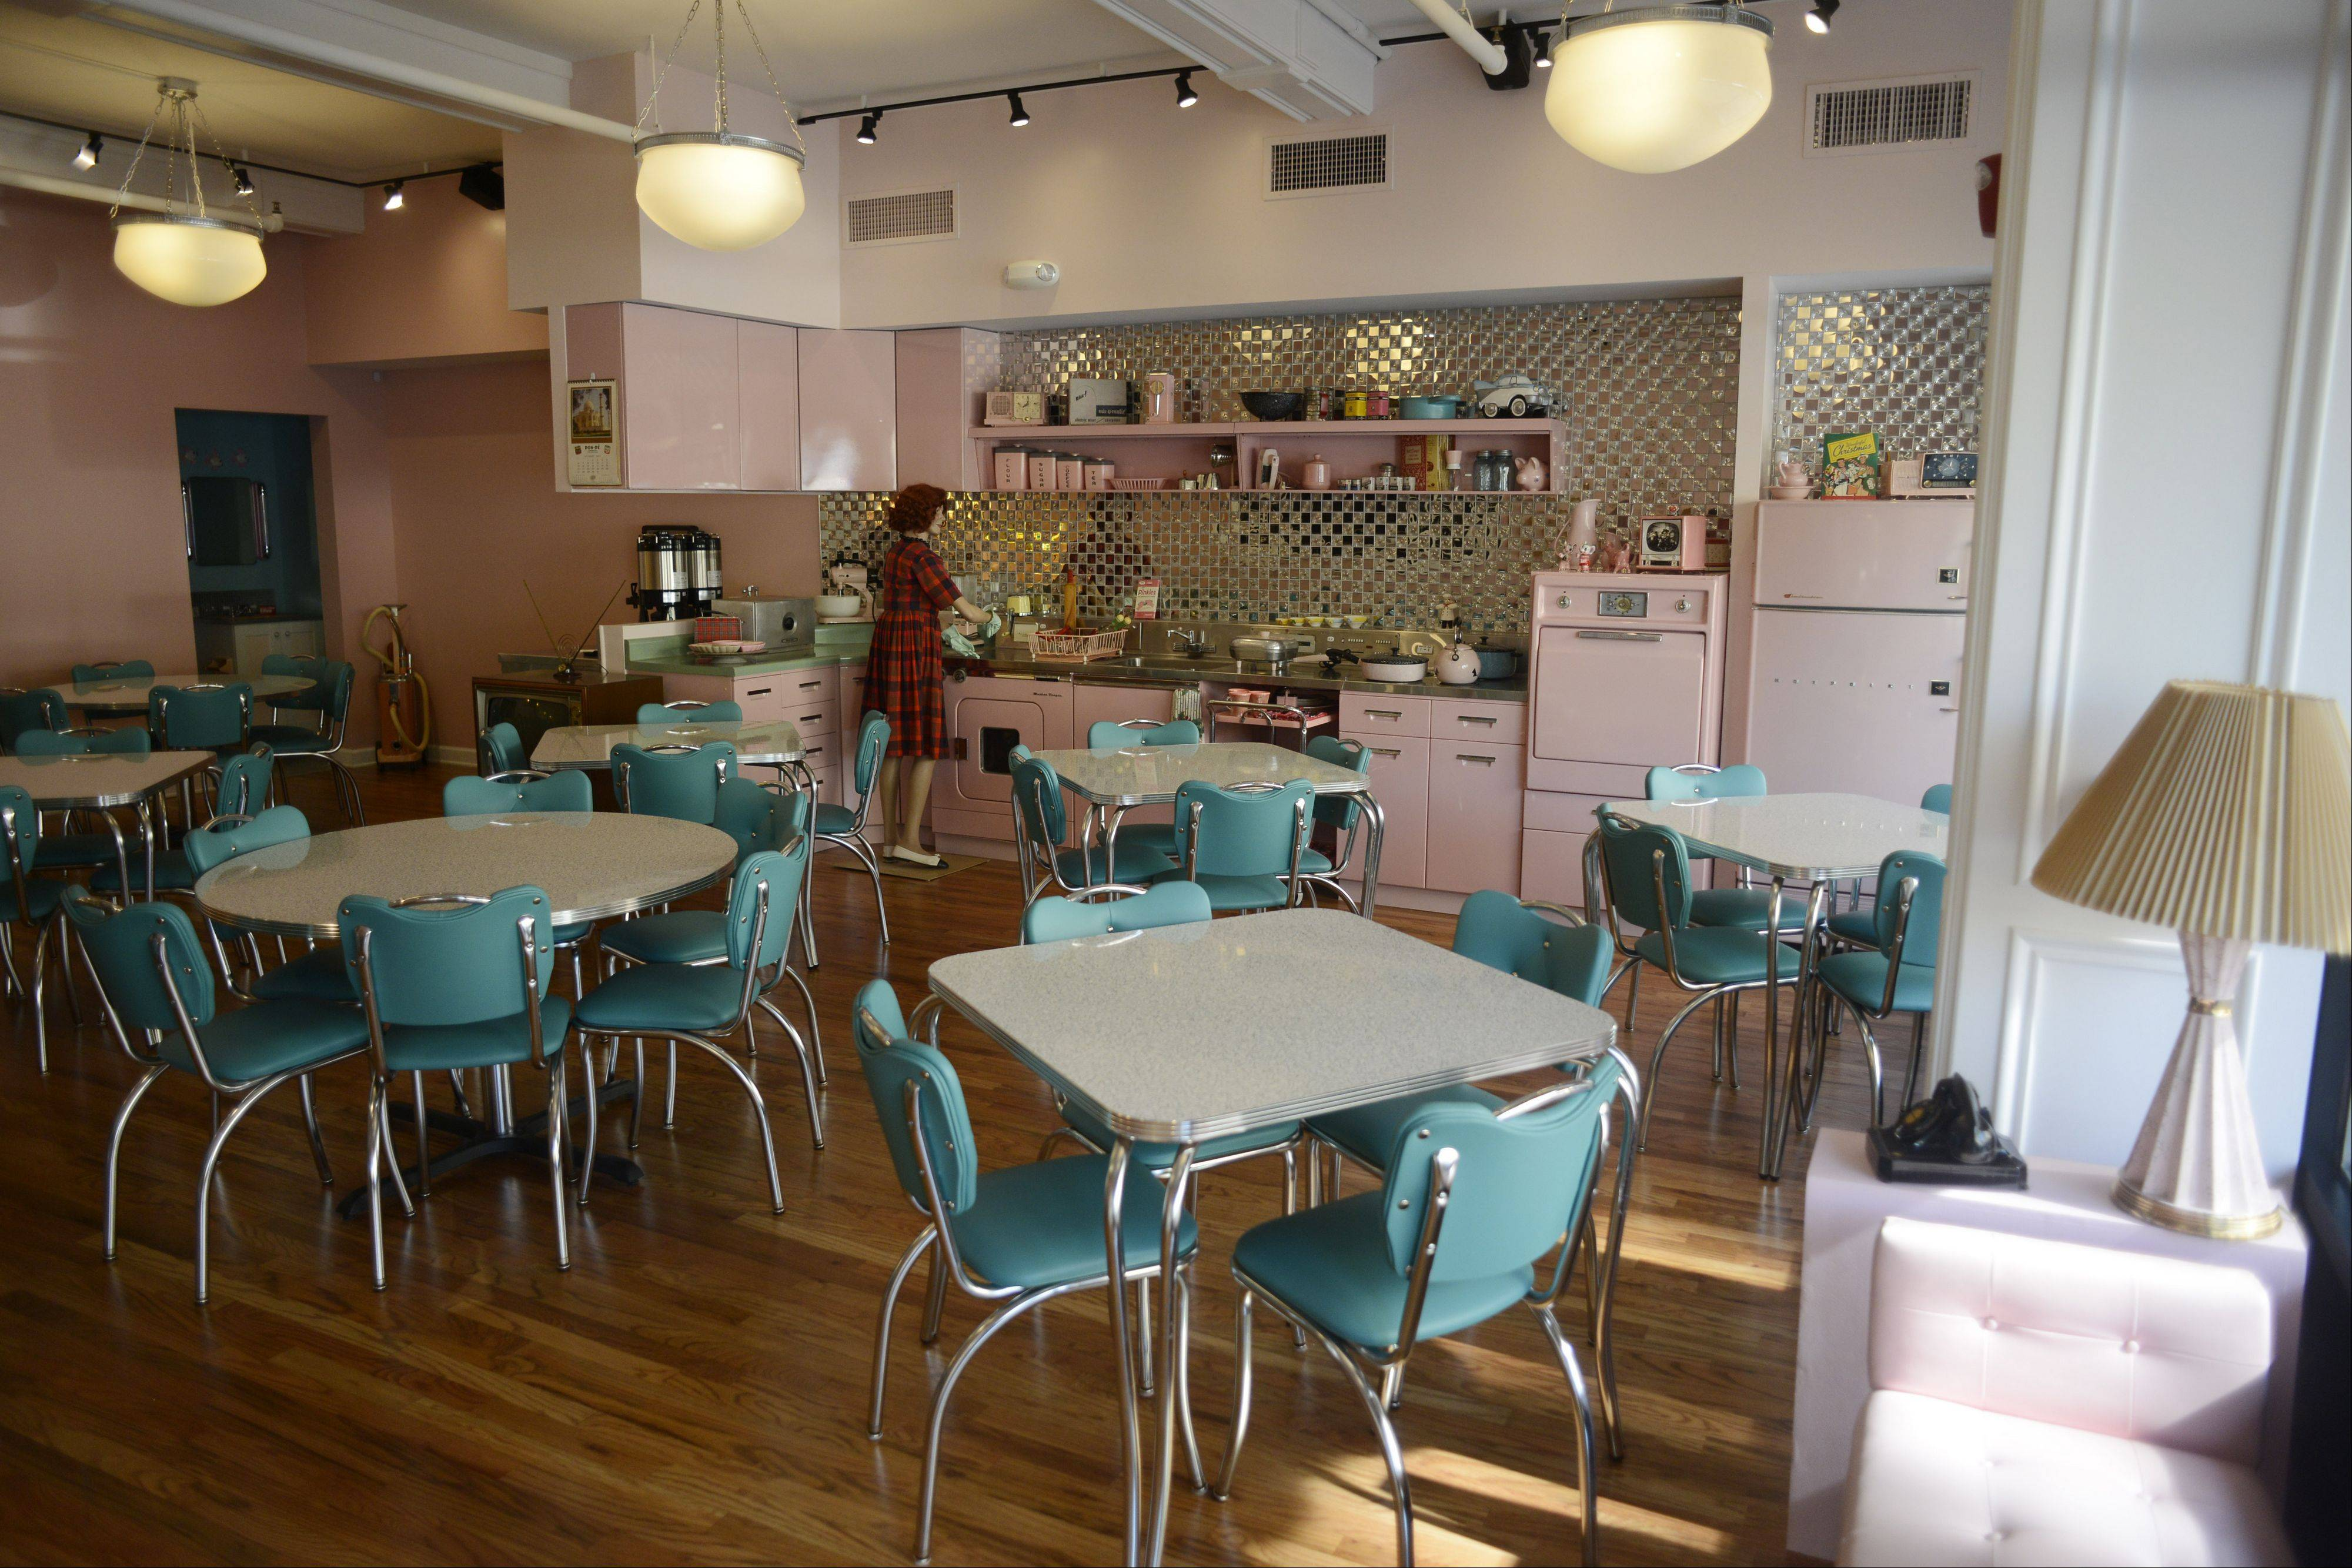 Circa 57, a 1950s-themed restaurant set to open Oct. 17 in downtown Arlington Heights, includes a room done up as the interior of a classic bungalow house.